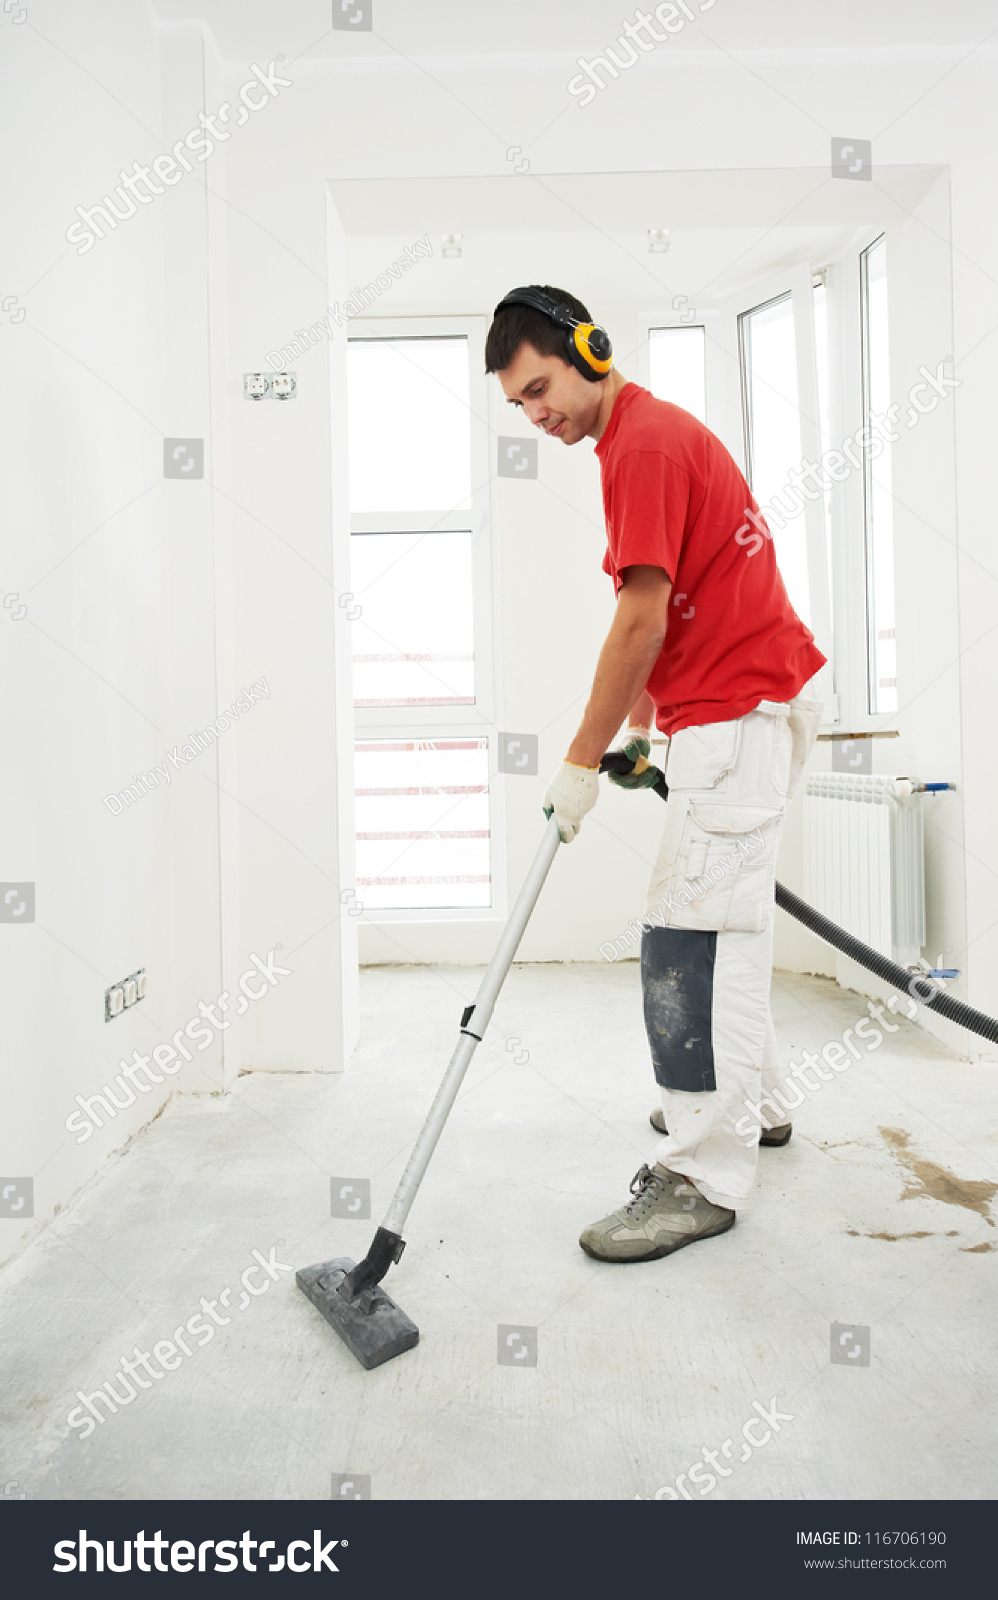 Worker Cleaning Floor With Vacuum Cleaner From Industrial